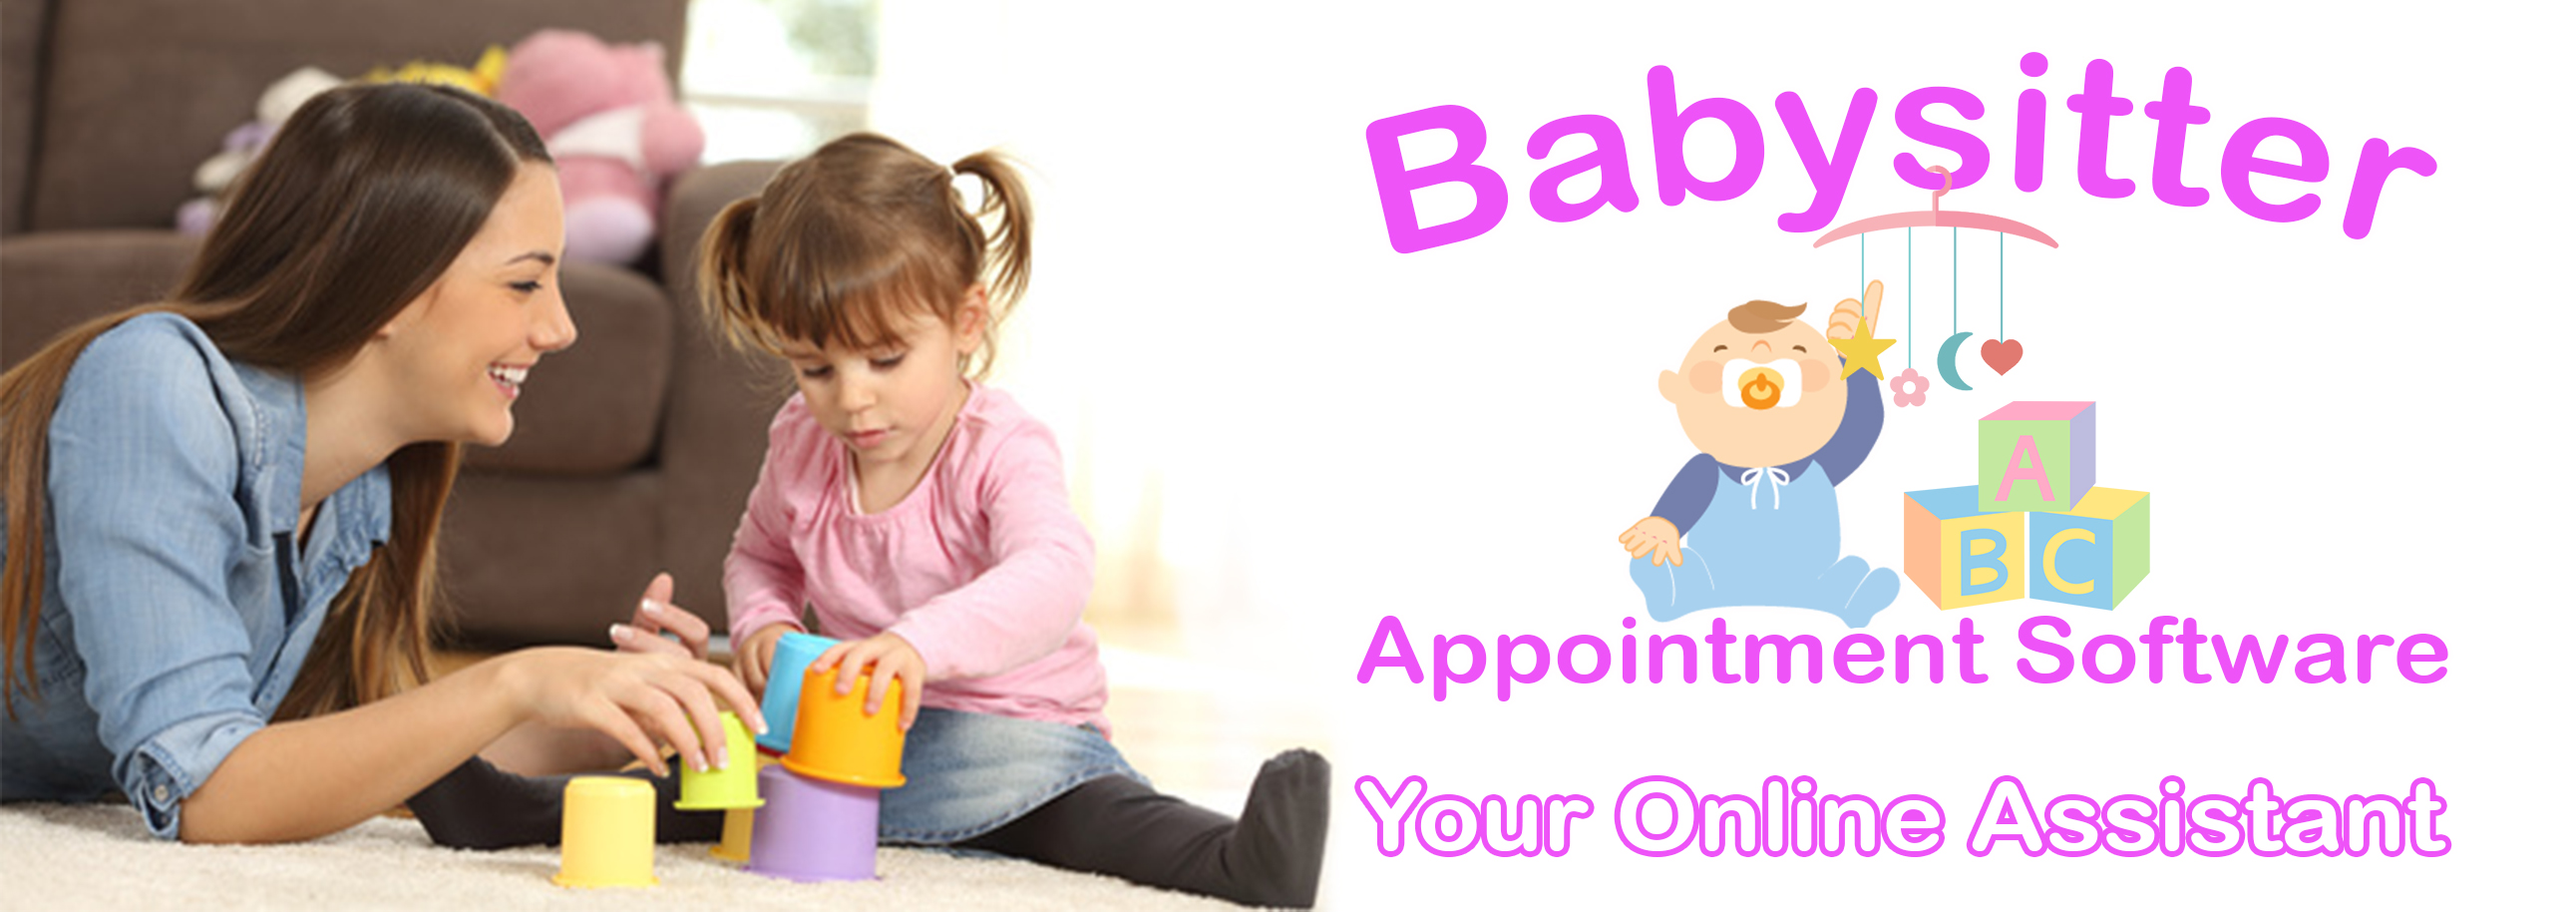 babysitter-appointment-software